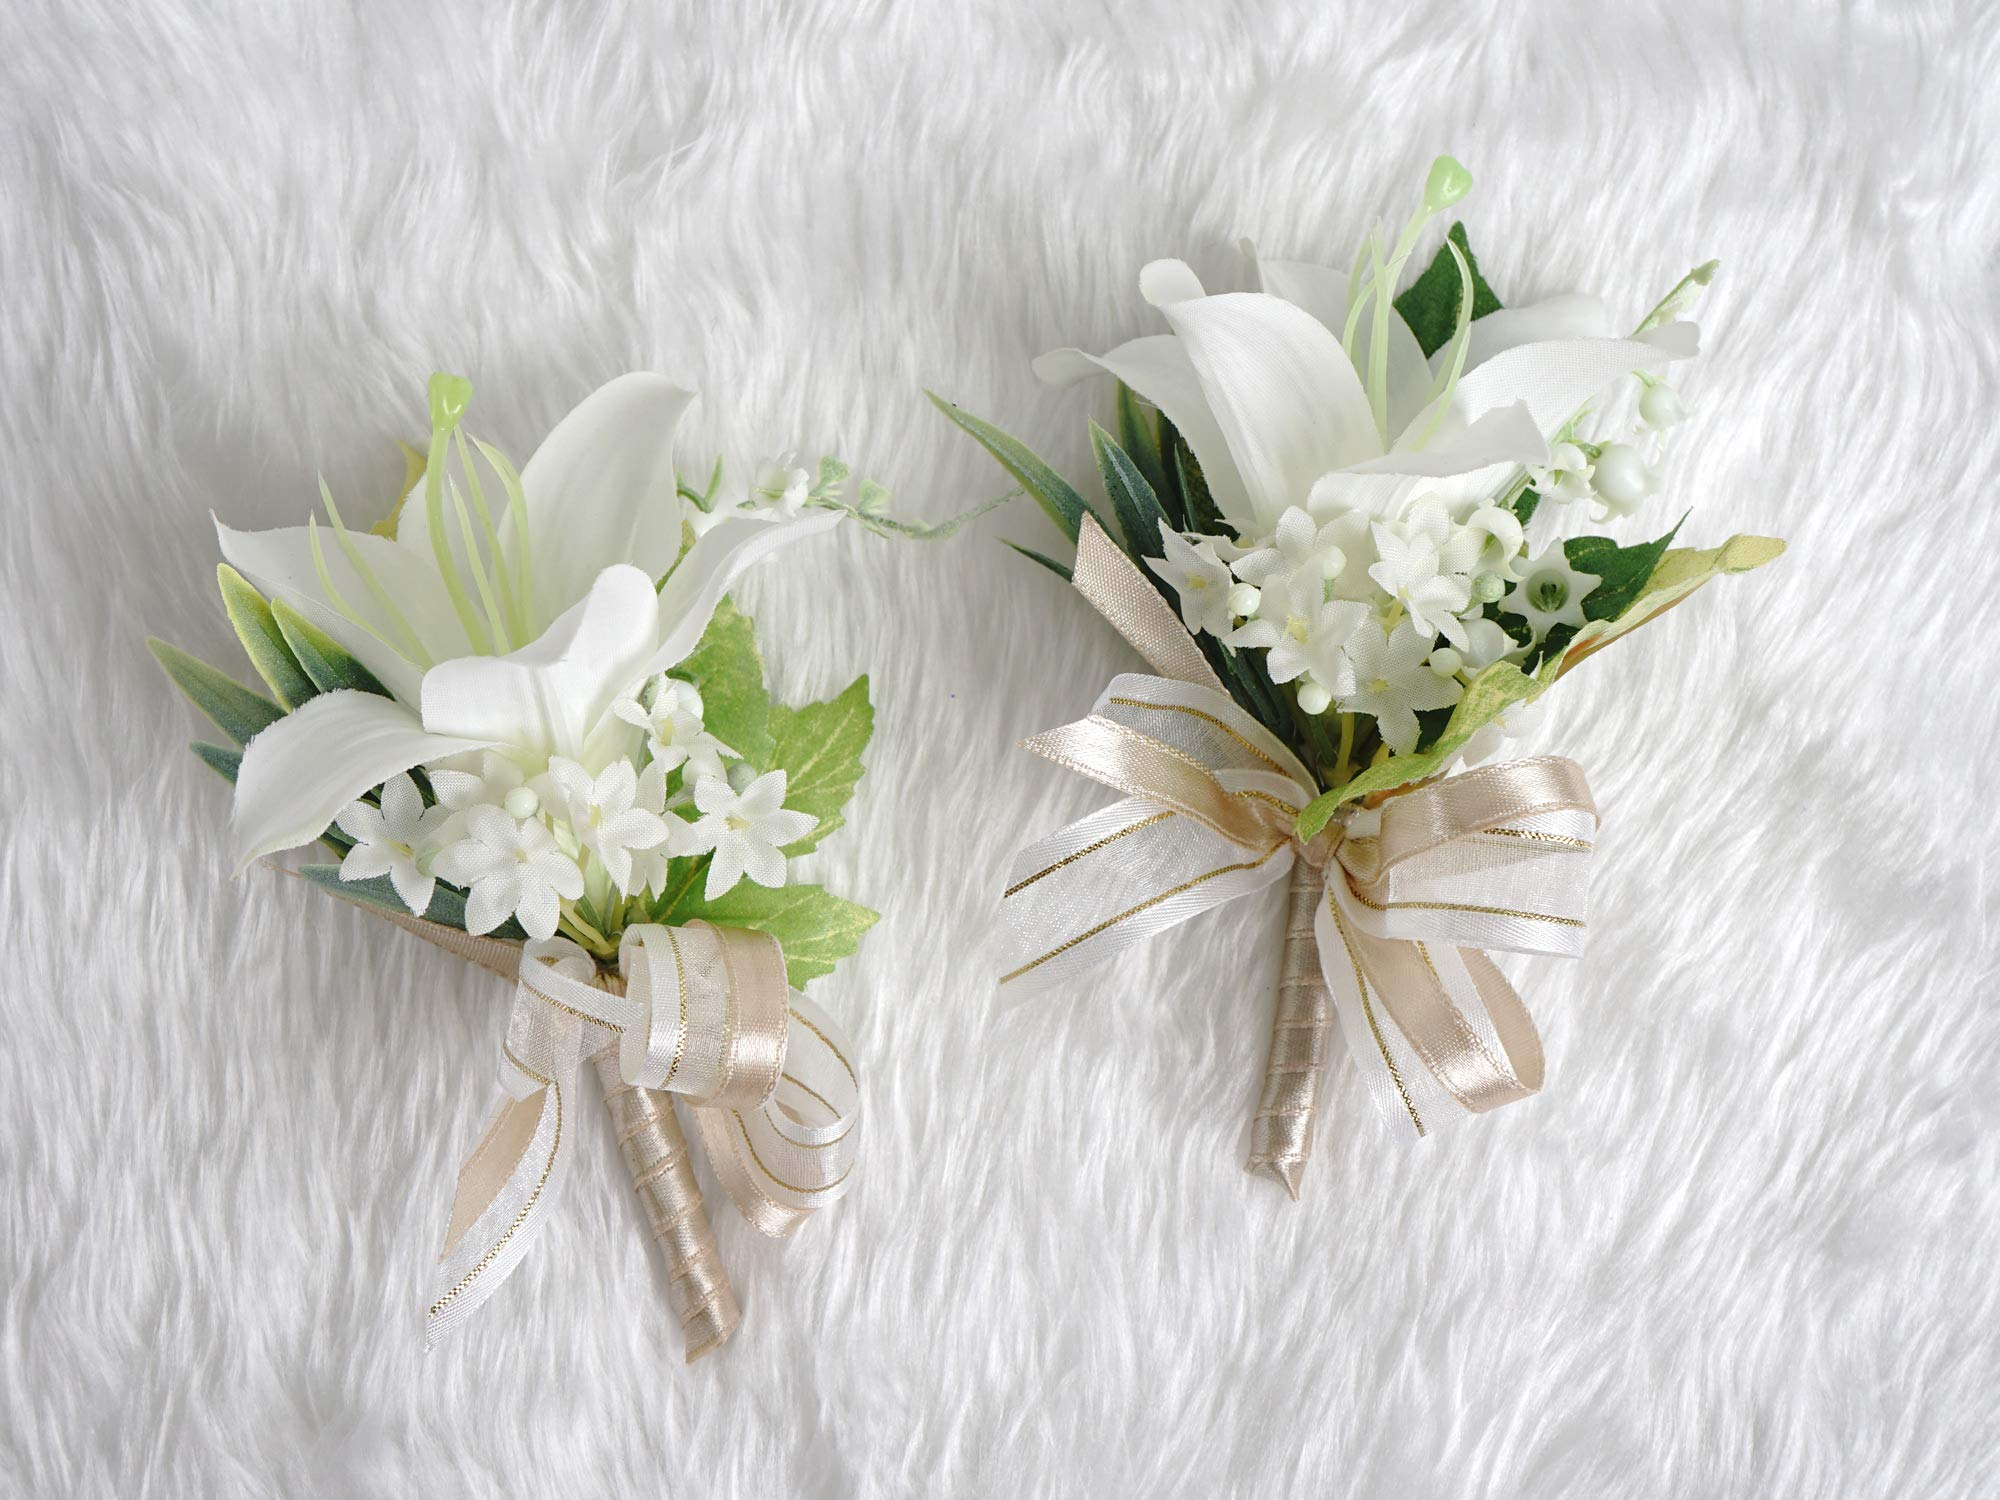 TSG Precious Lily Boutonniere Pins Groom for Wedding Prom Party(2pcs) (Beige Theme) by TSG